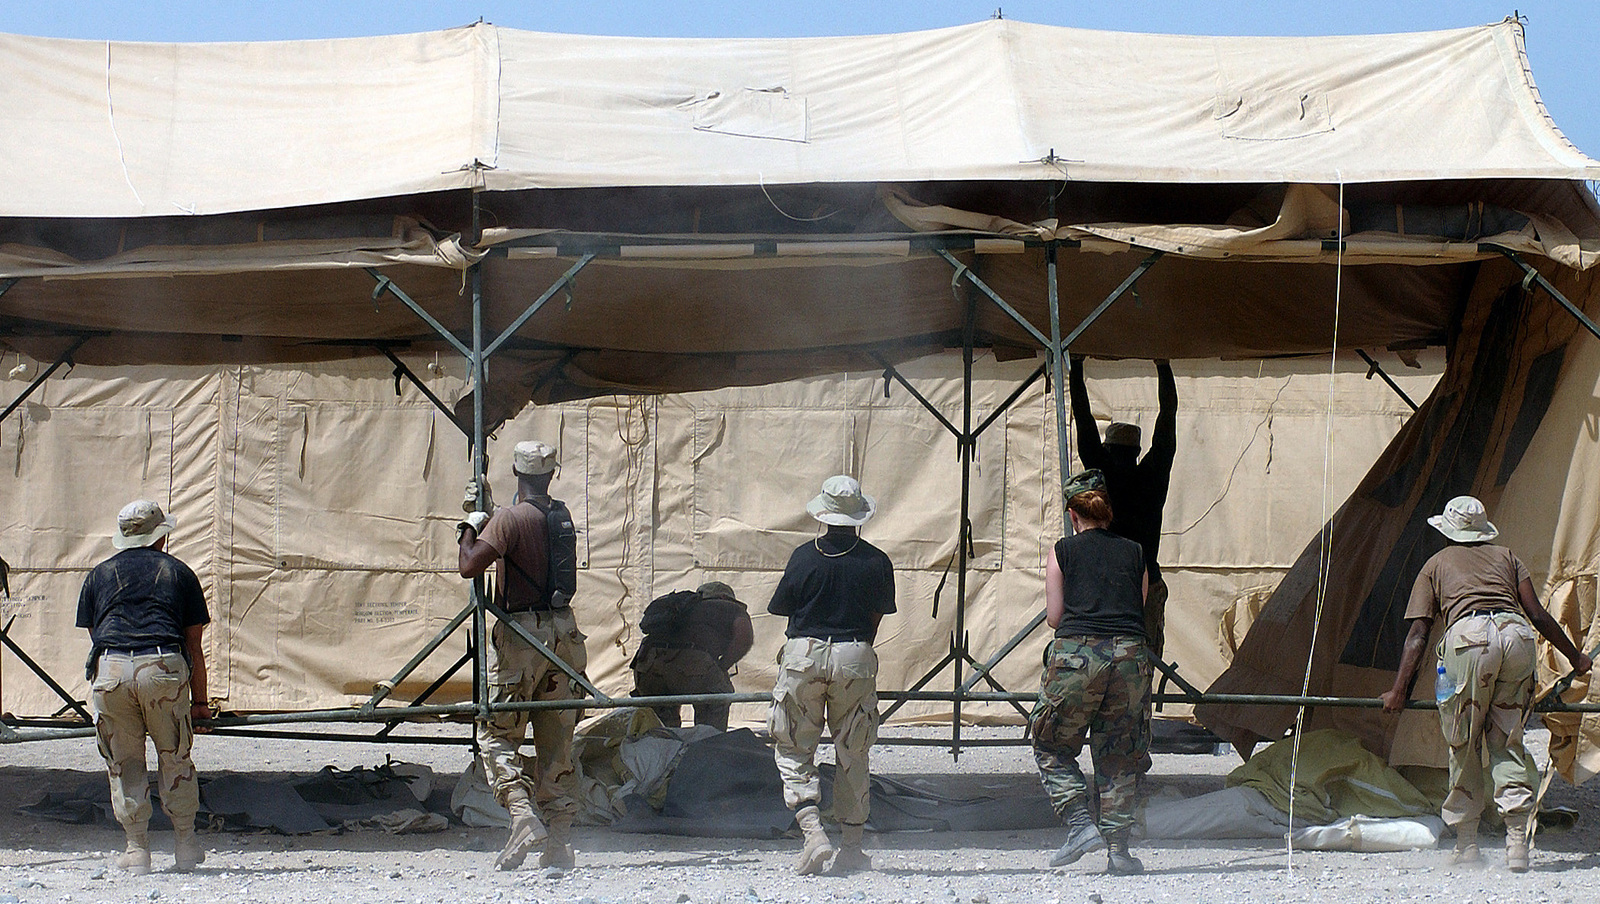 Several deployed Air Force members join to set up TEMPER